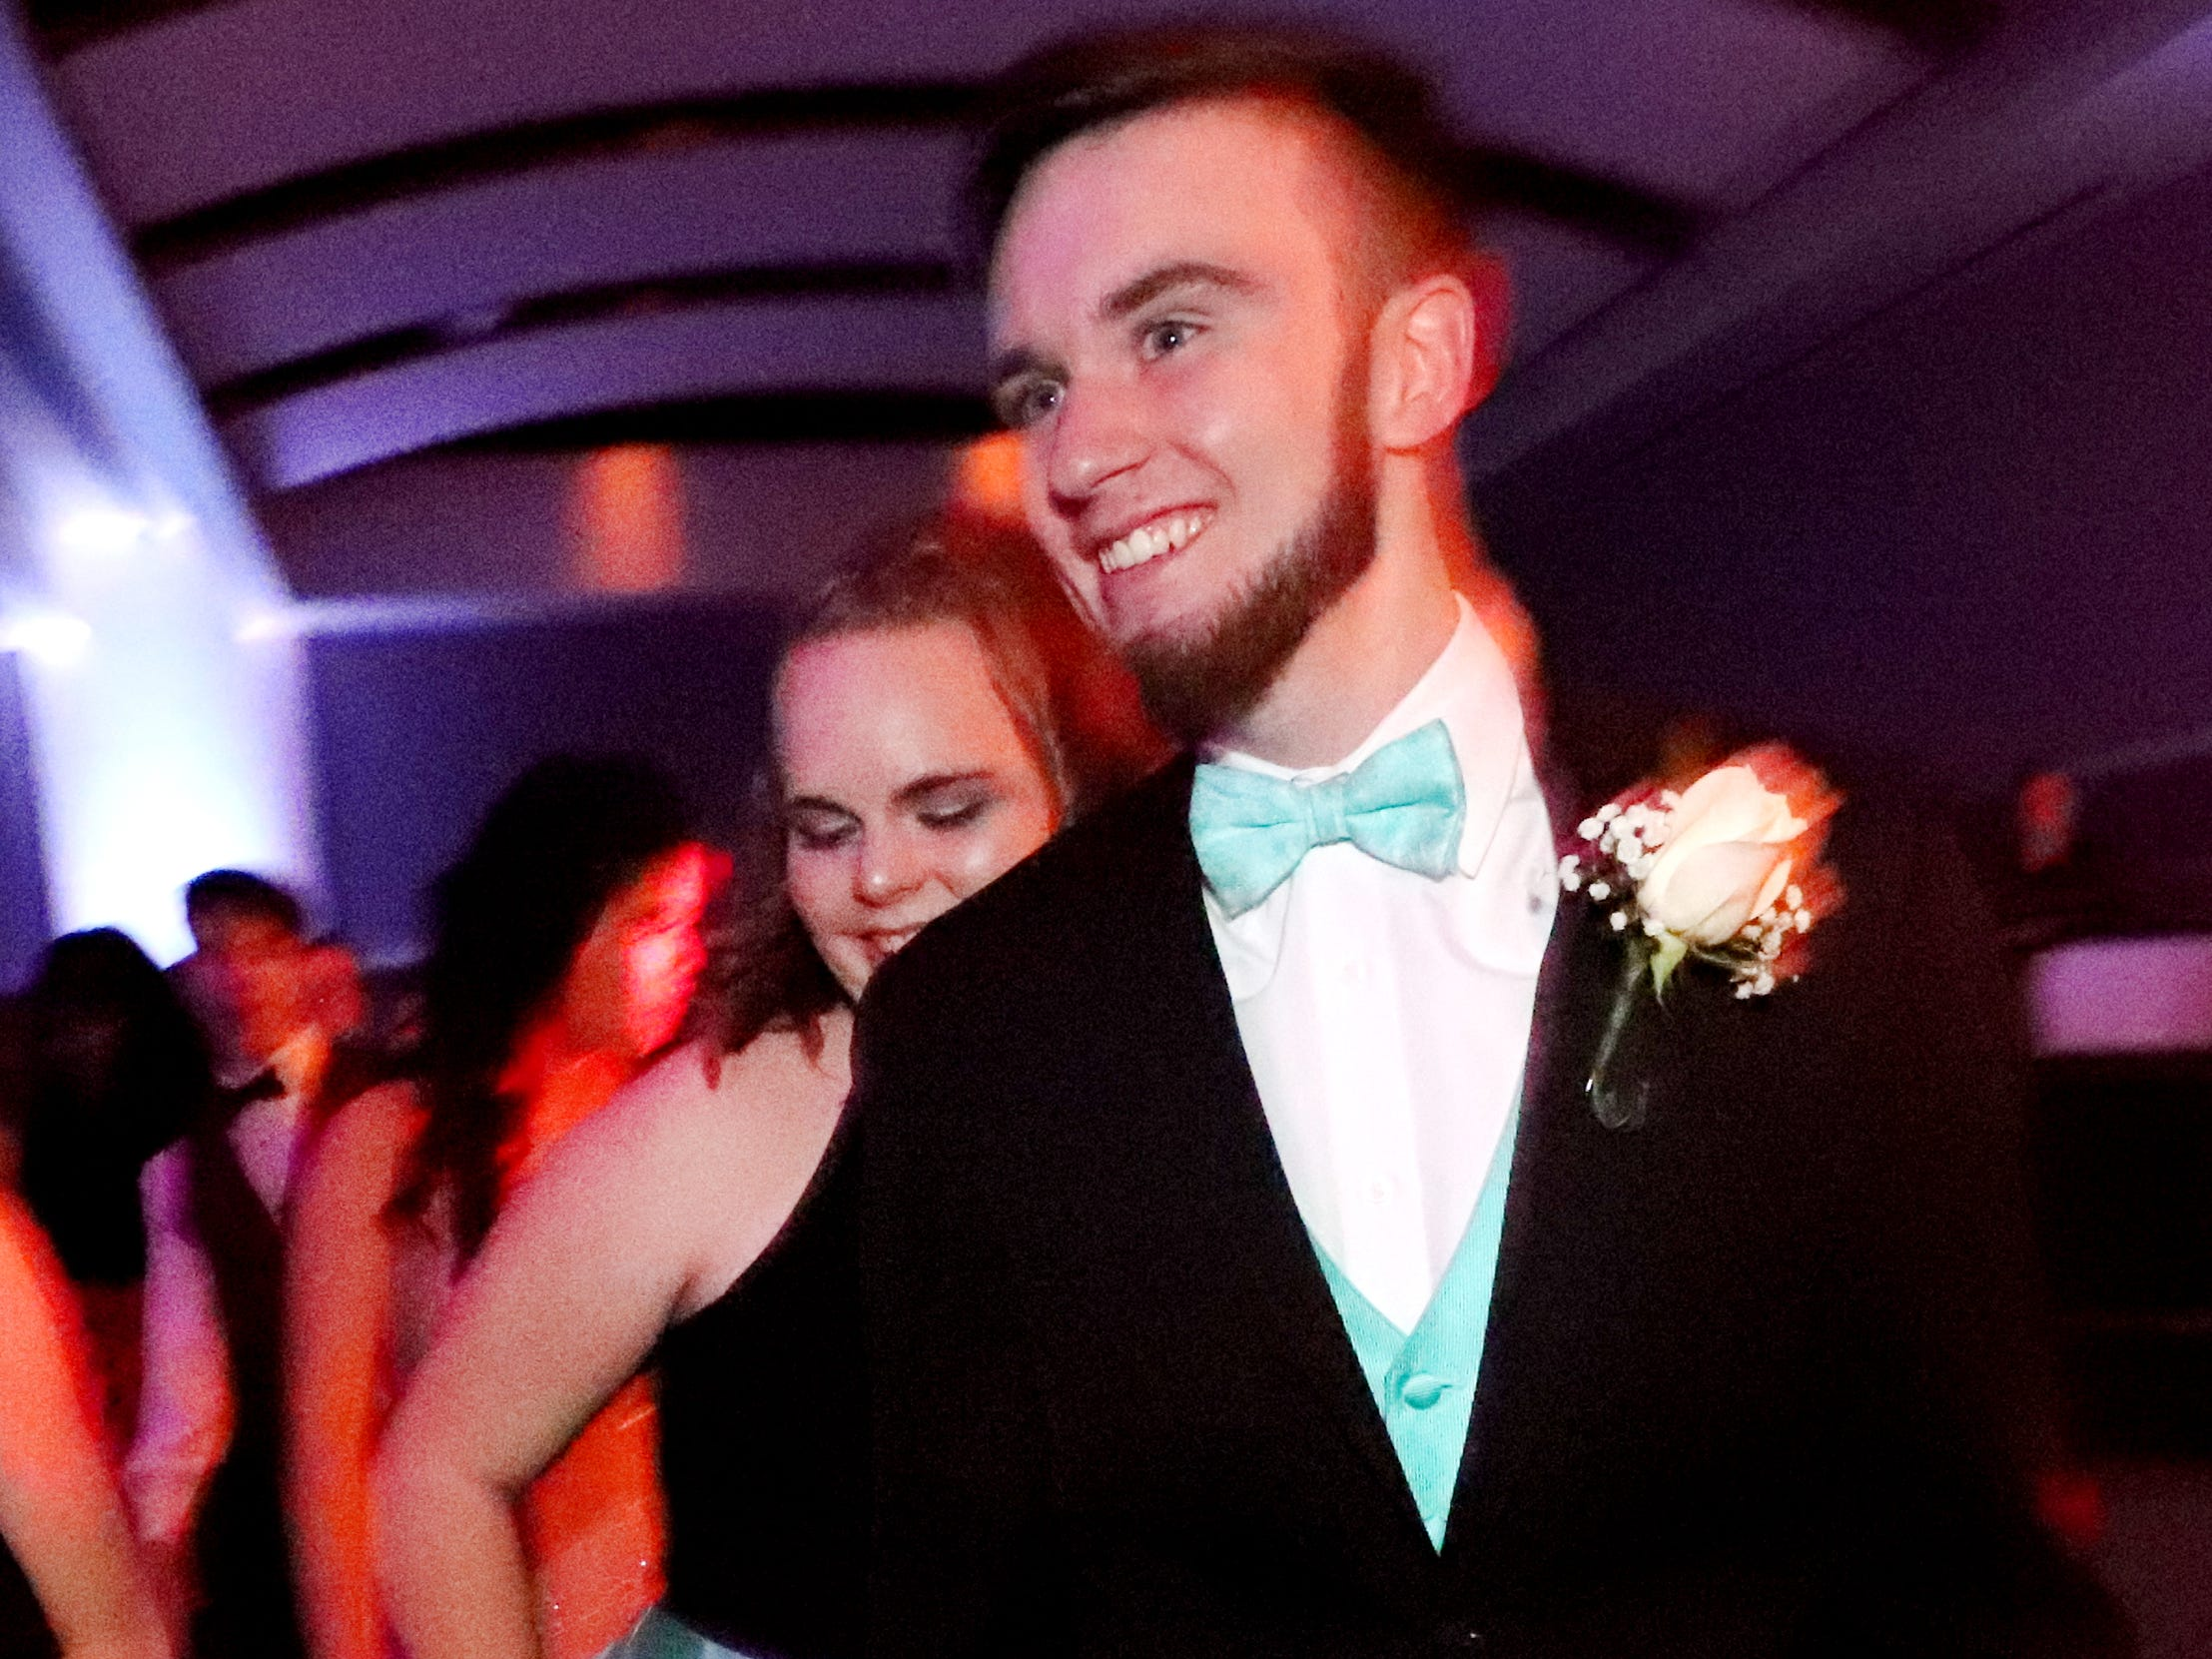 Blackman held it's prom on Friday April 12, 2019, at MTSU.